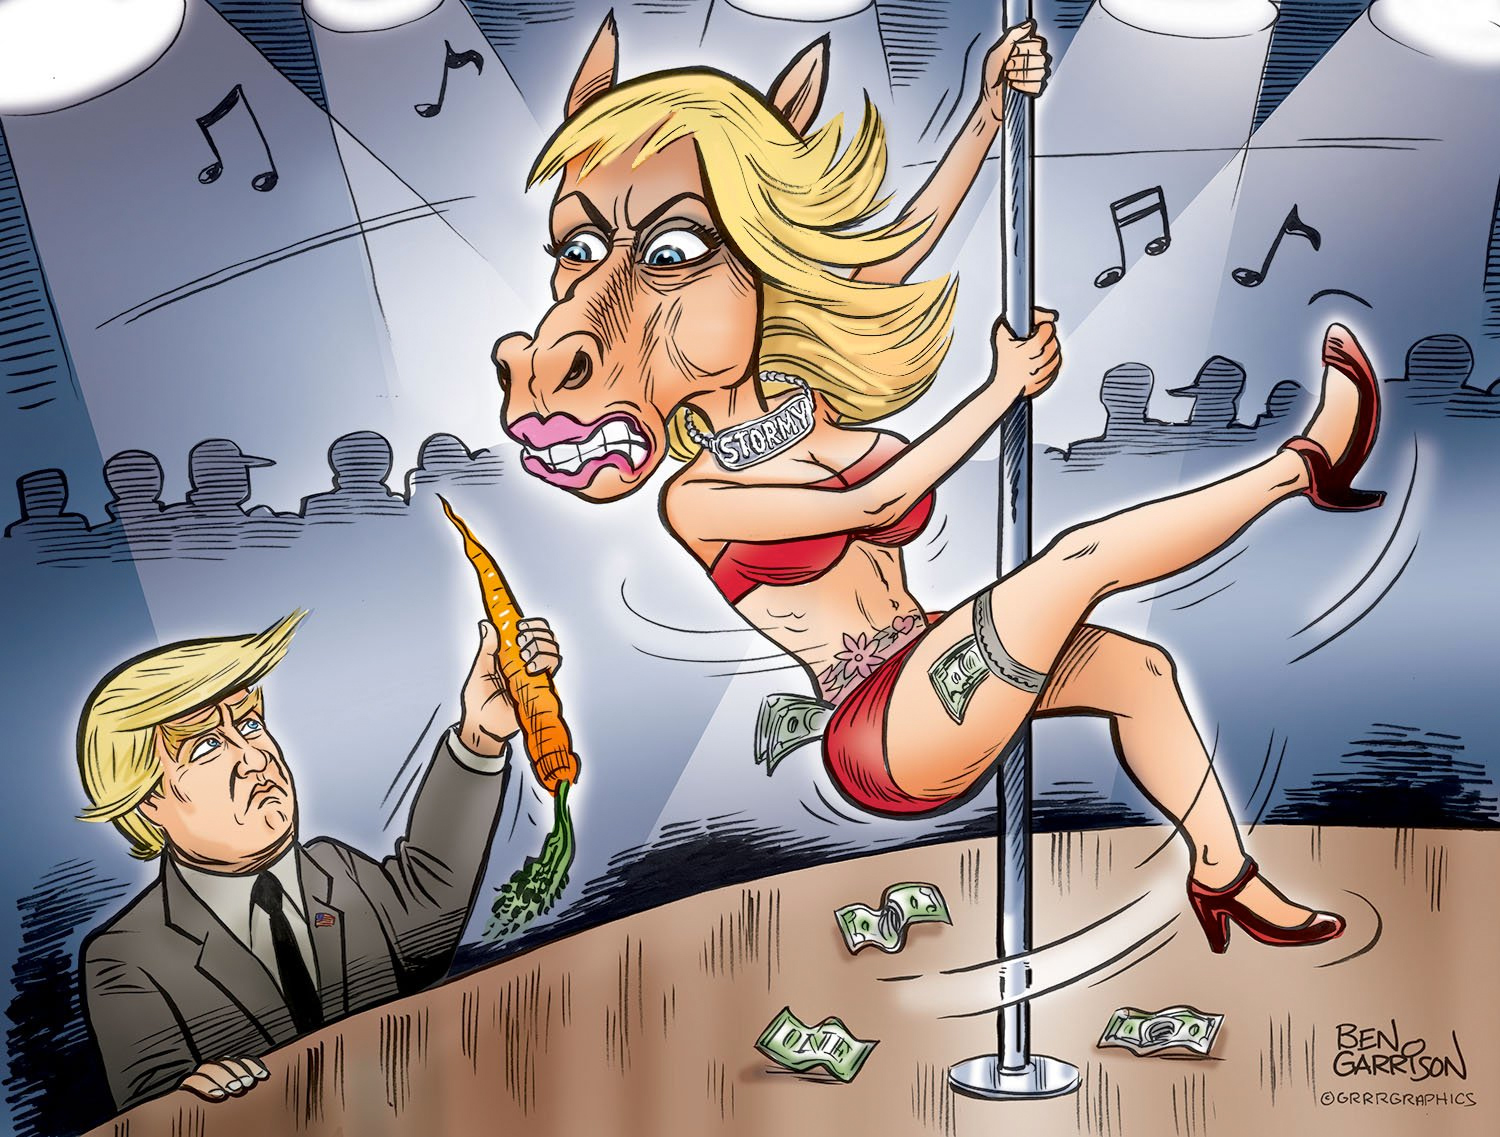 'Horseface' Stormy Daniels Strips for Carrots, In Savage Political Cartoon